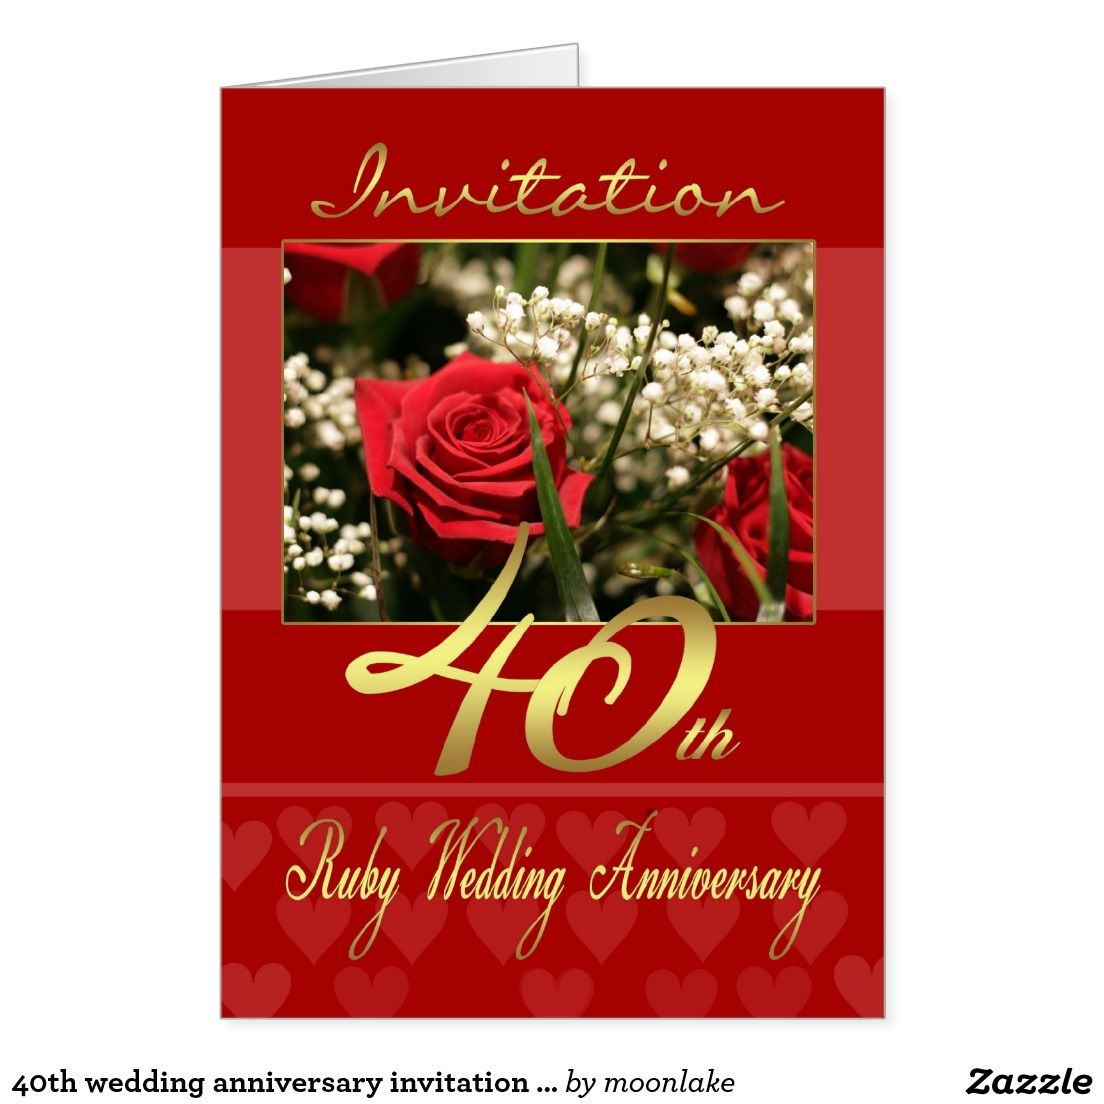 40th wedding anniversary invitation card - ruby we | Wedding ...